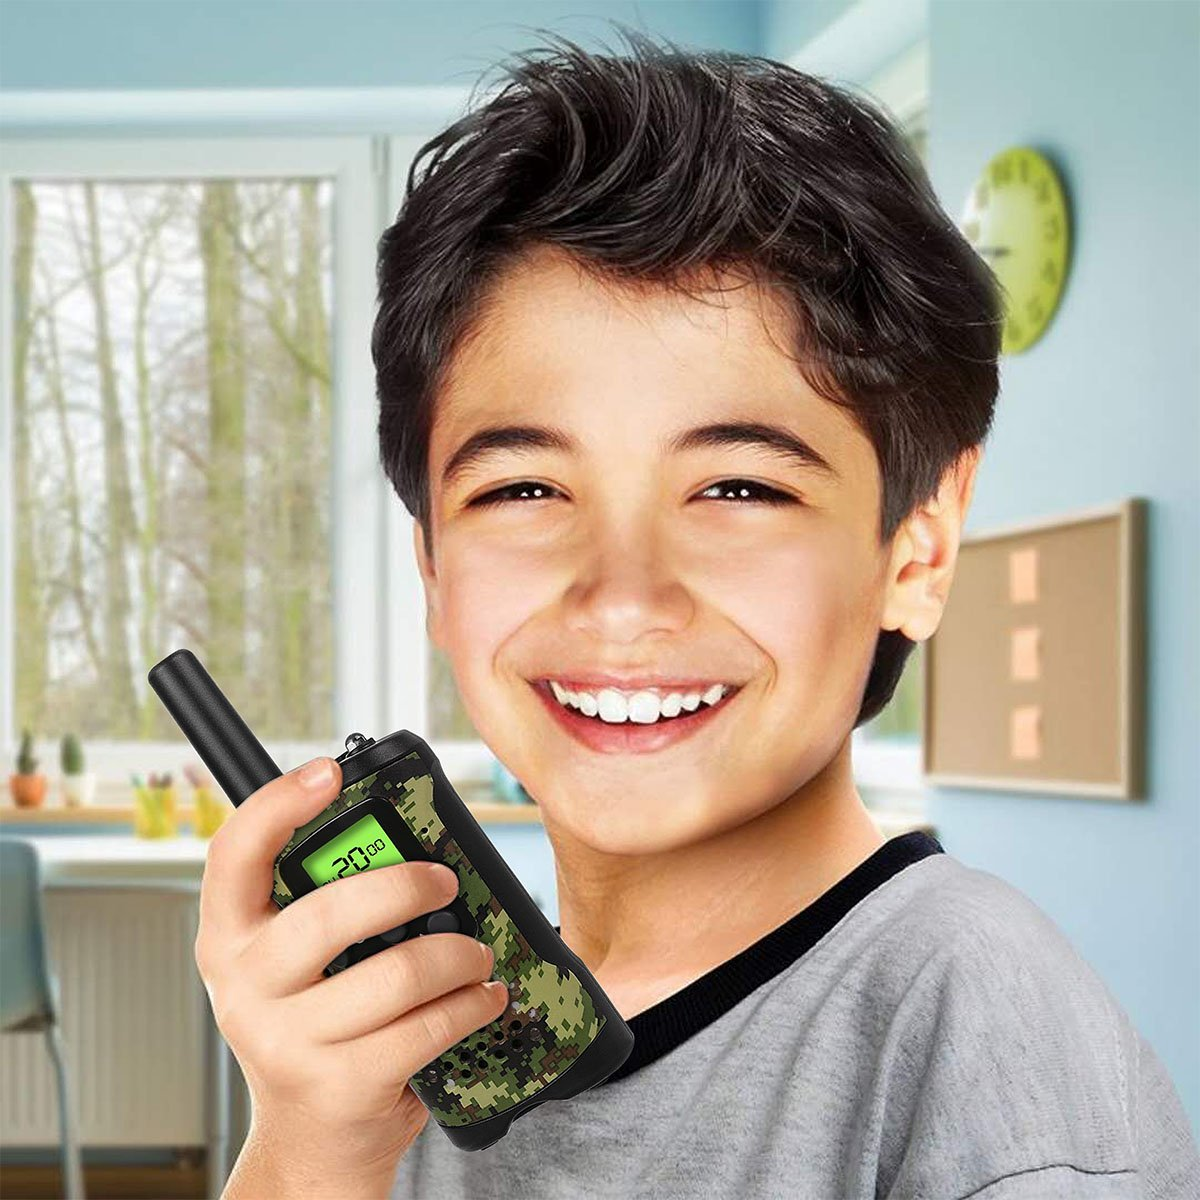 LET'S GO! DIMY Toys for 6-12 Year Old Boys, Walkie Talkies for Kids Boys Toys for 3-12 Year Old Boys Gifts for 3-12 Year Old Girls Birthday Presents New Gifts Green DJ91 by LET'S GO! (Image #2)